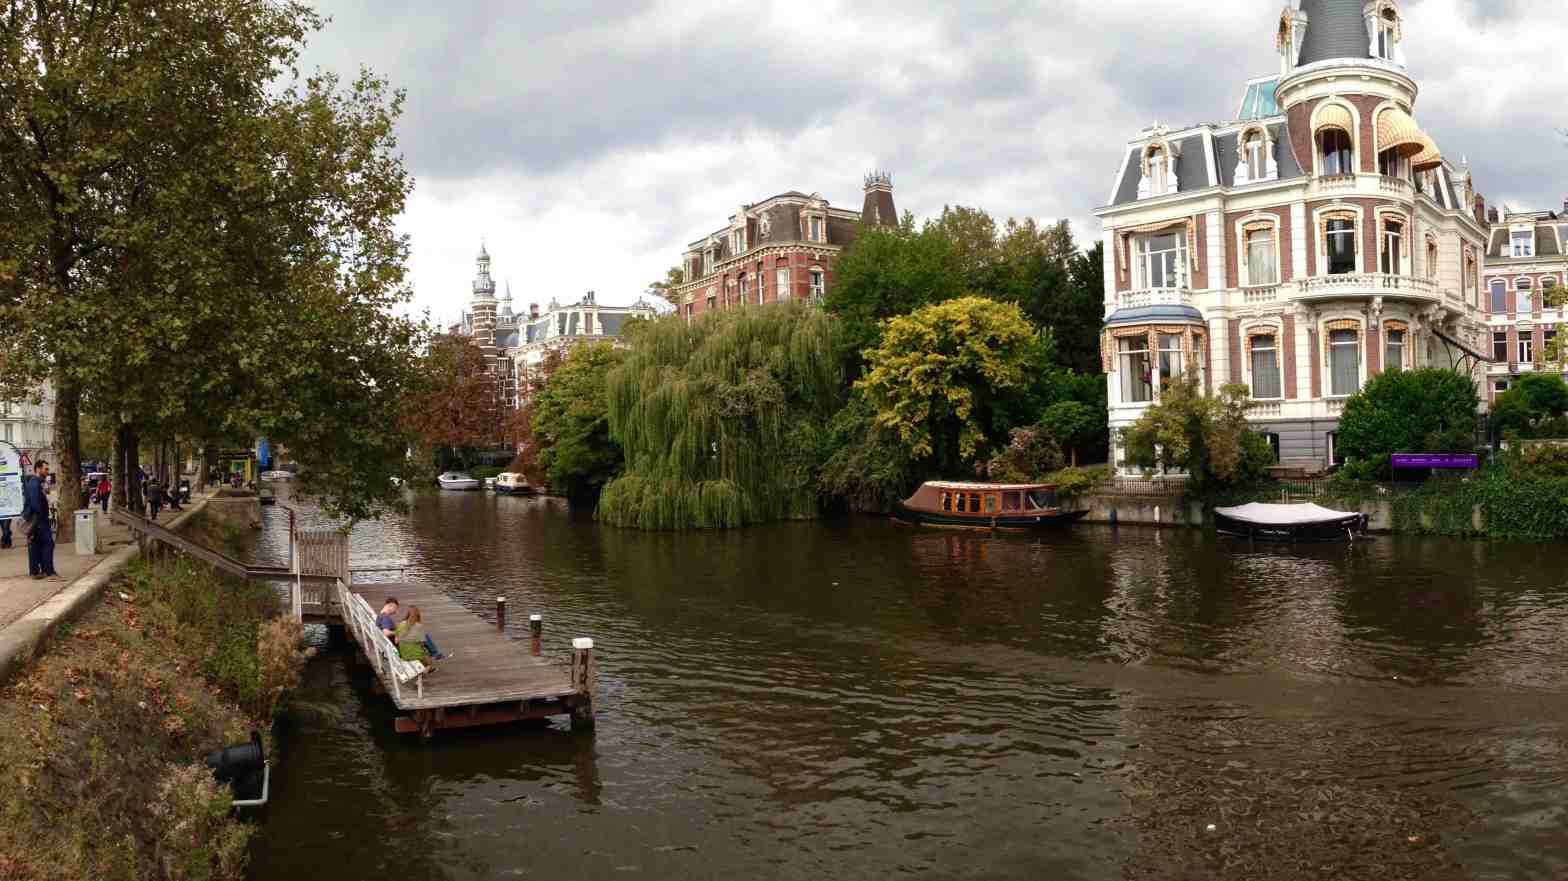 By the river in Amsterdam